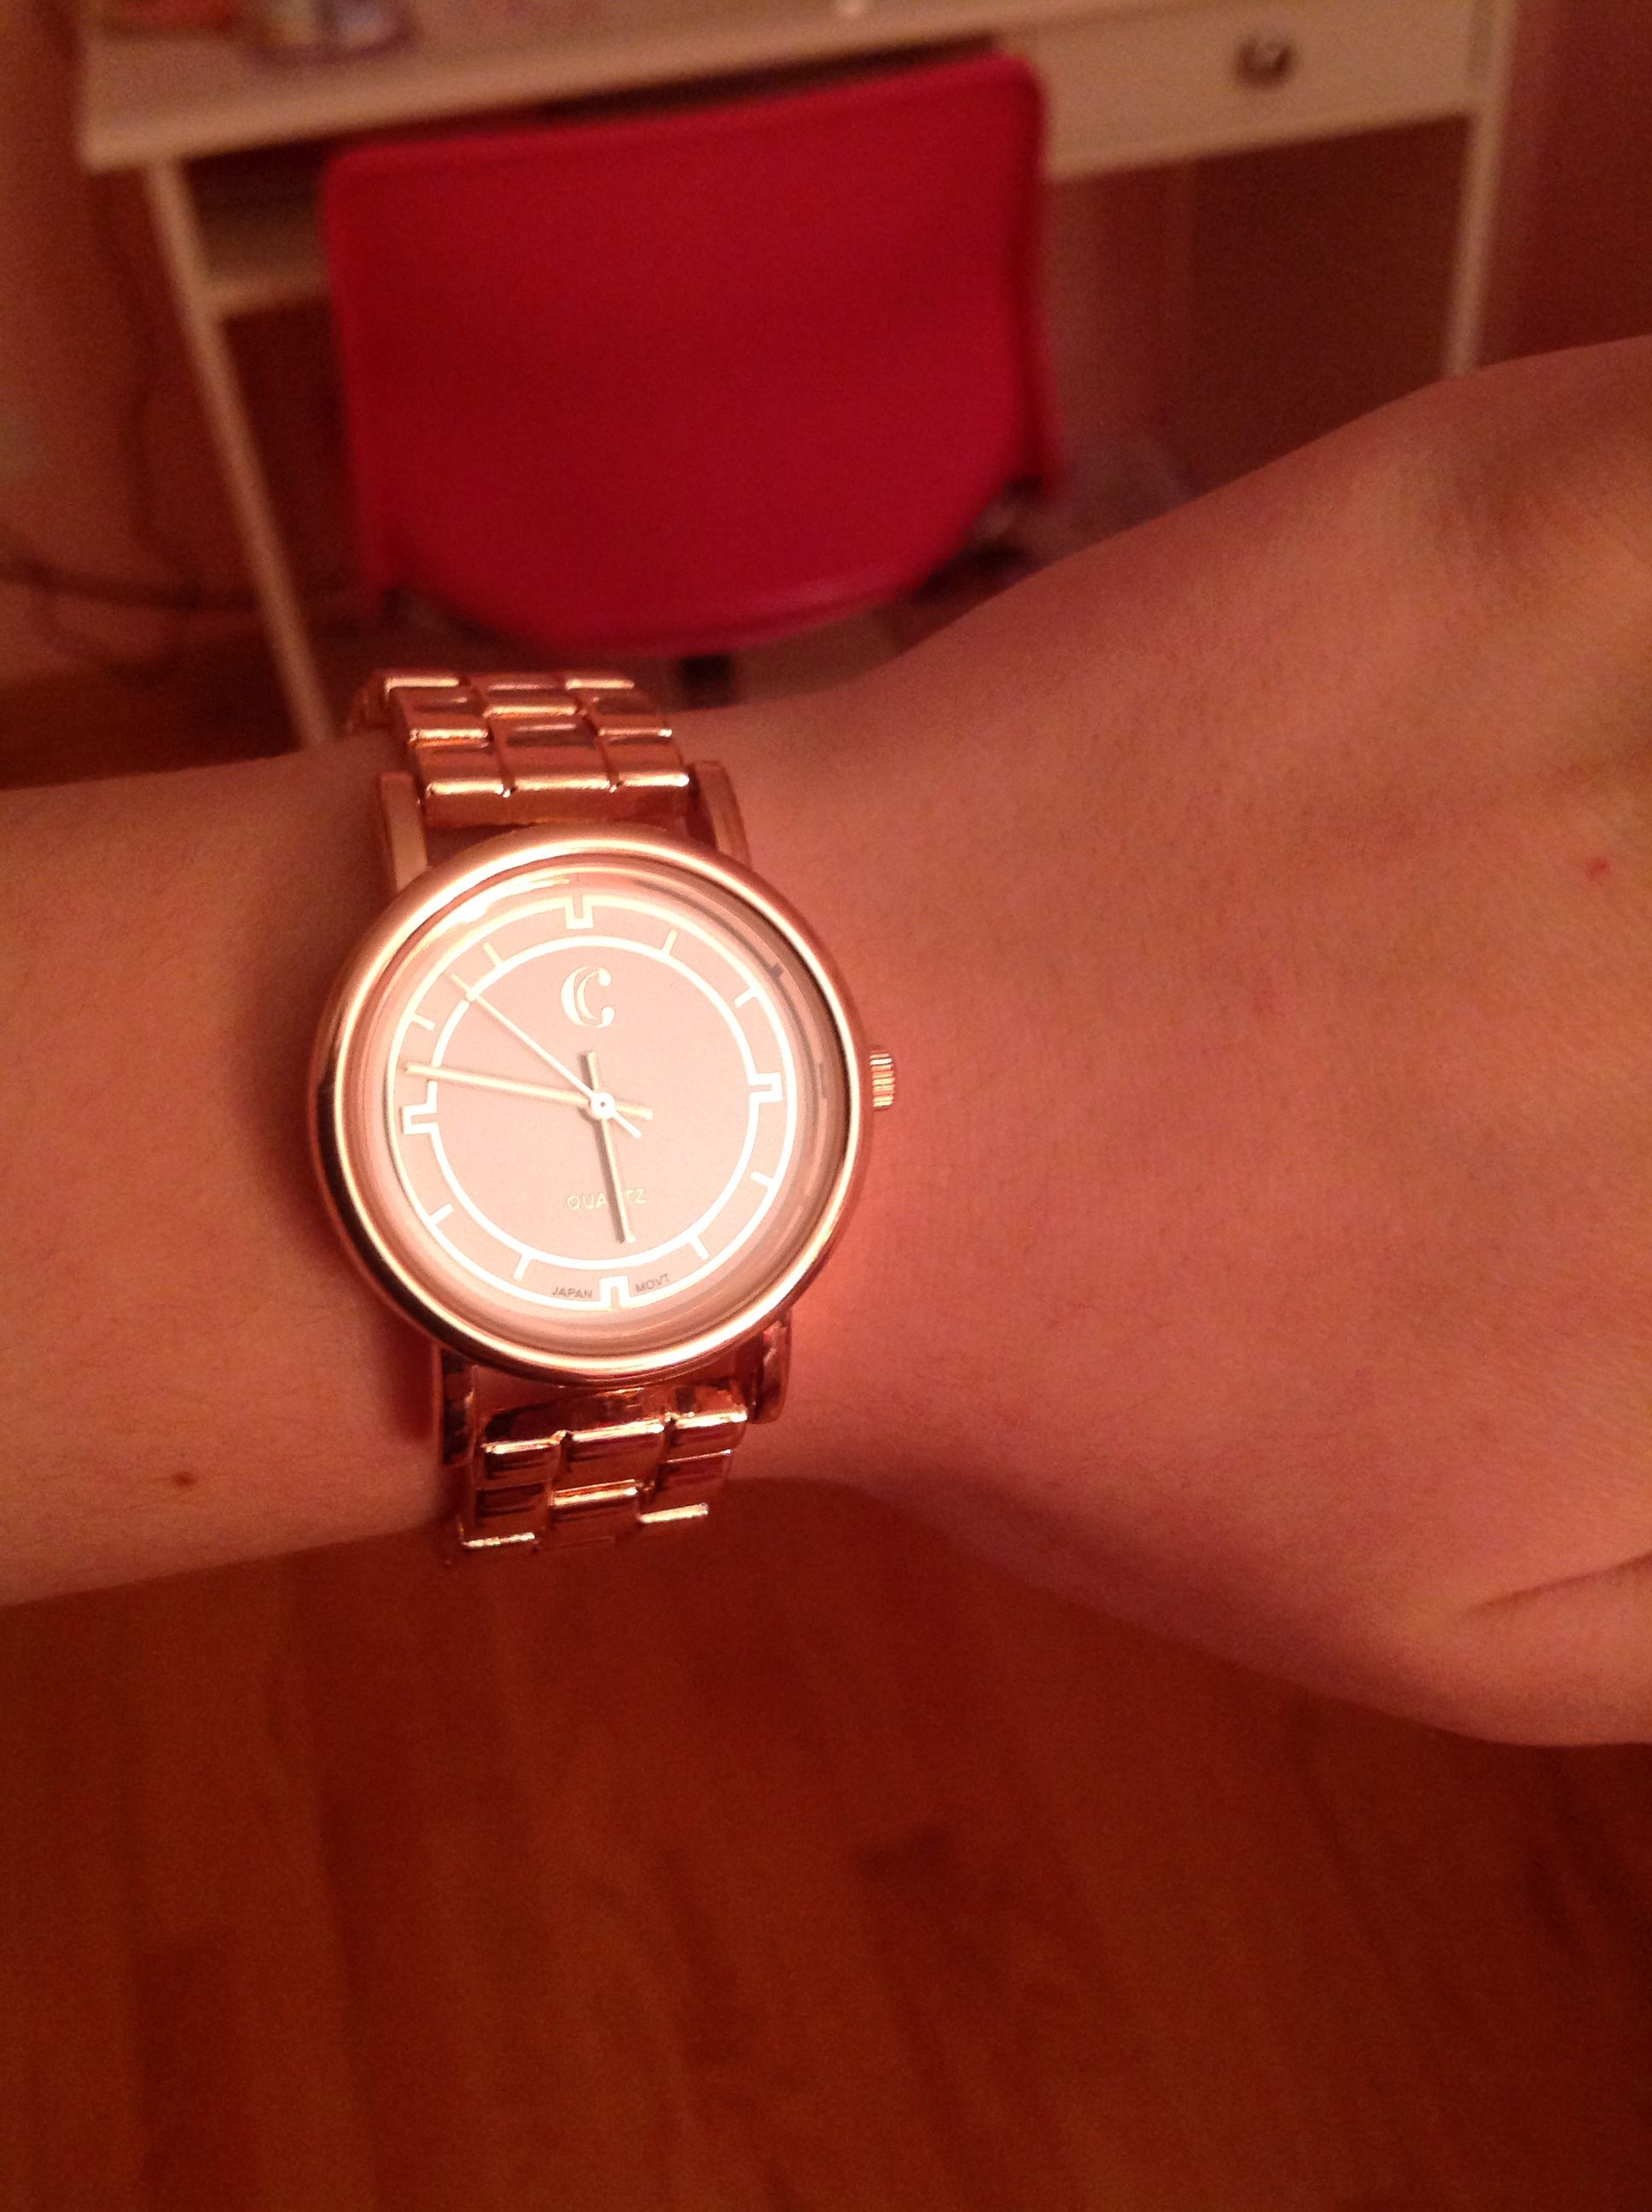 In love with bronze watches<3